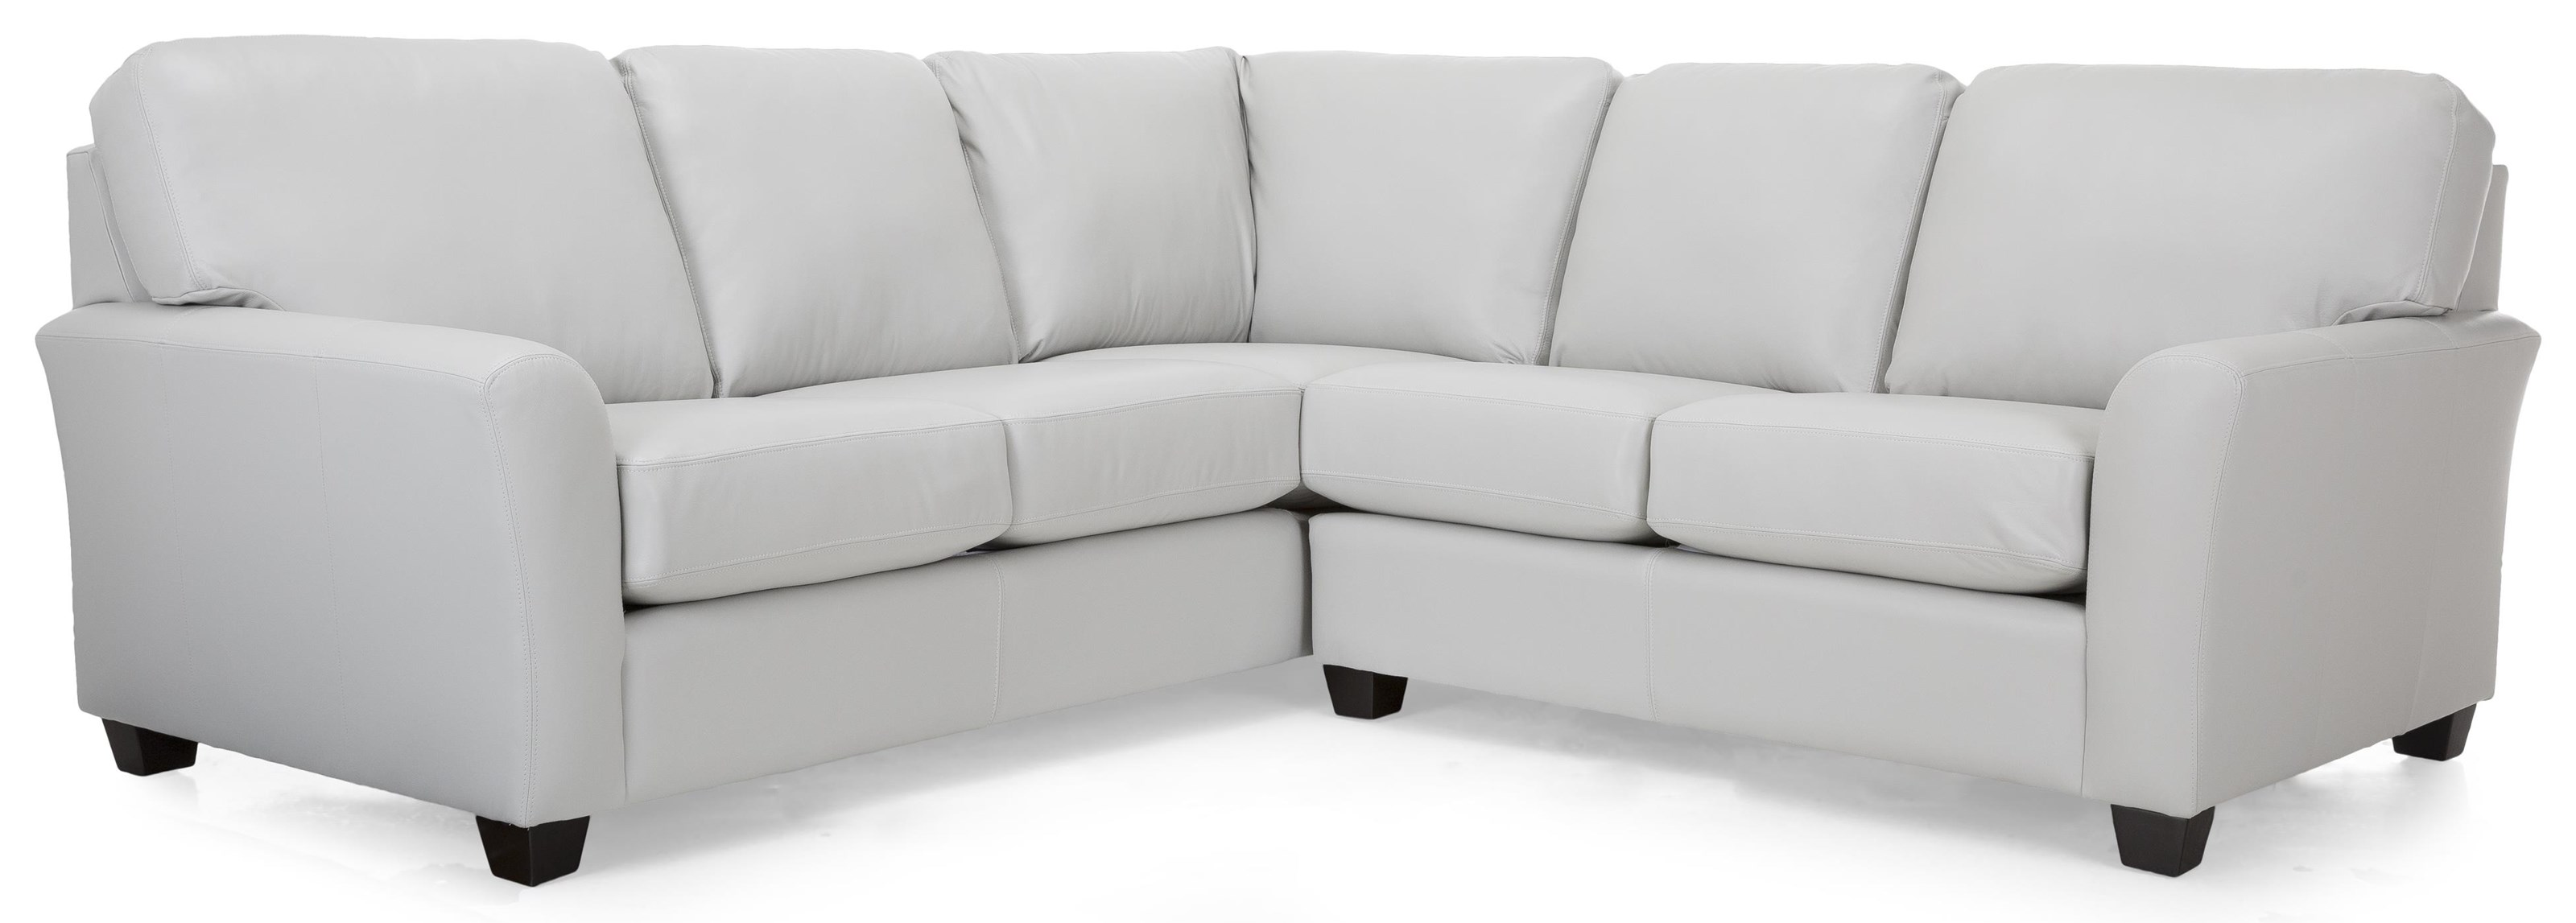 Garth Leather Sectional by Taelor Designs at Bennett's Furniture and Mattresses